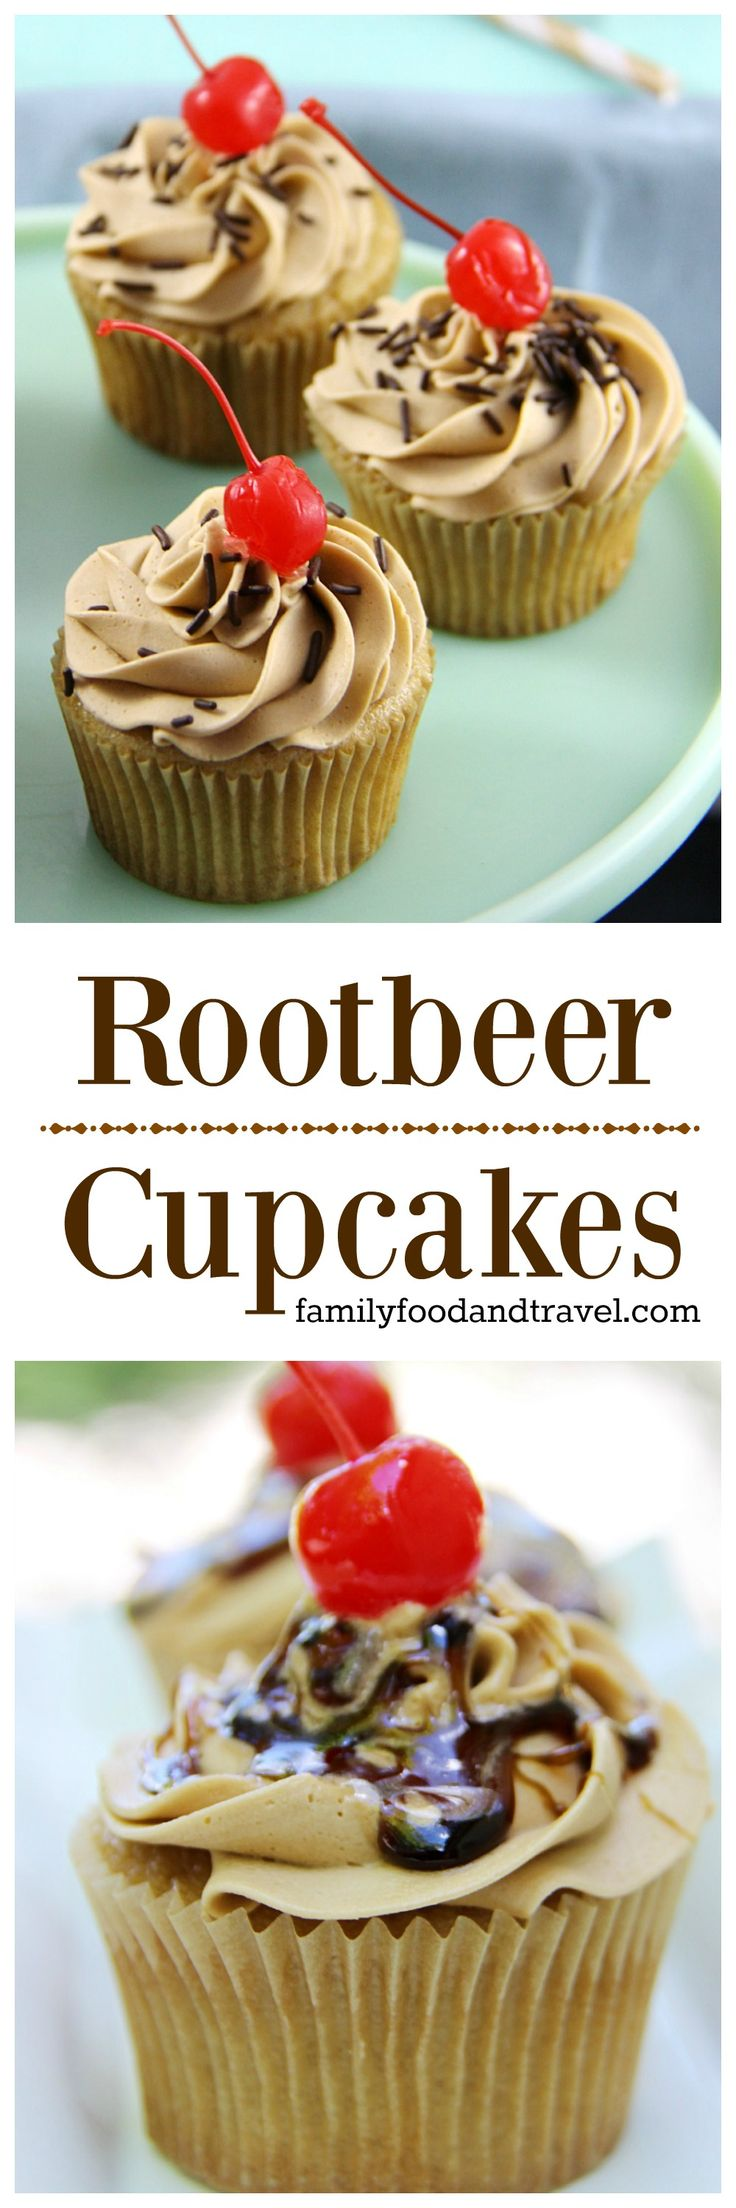 Root Beer Cupcakes - a delicious recipe for root beer cupcakes everyone will love. The perfect amount of sweetness that will be a hit at your next party.